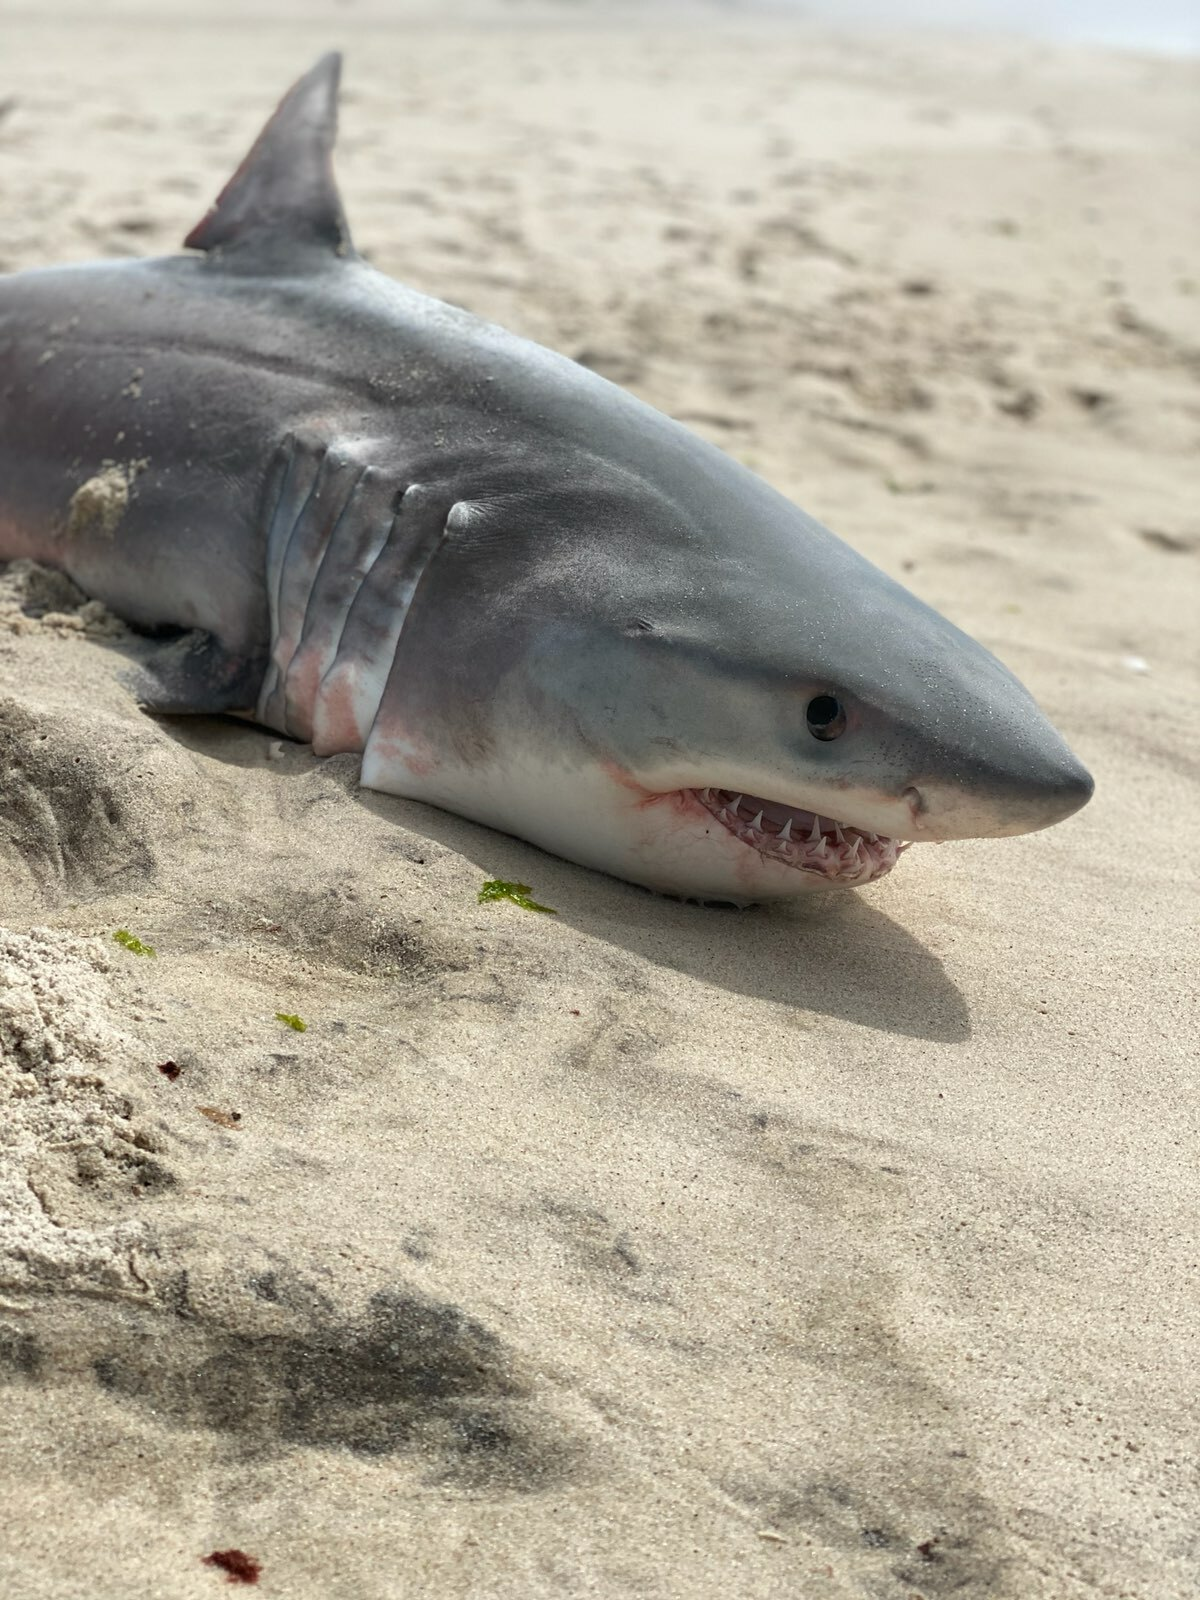 A dead juvenile white shark was found on the beach in Southampton Village last week. The occasional deaths of these young